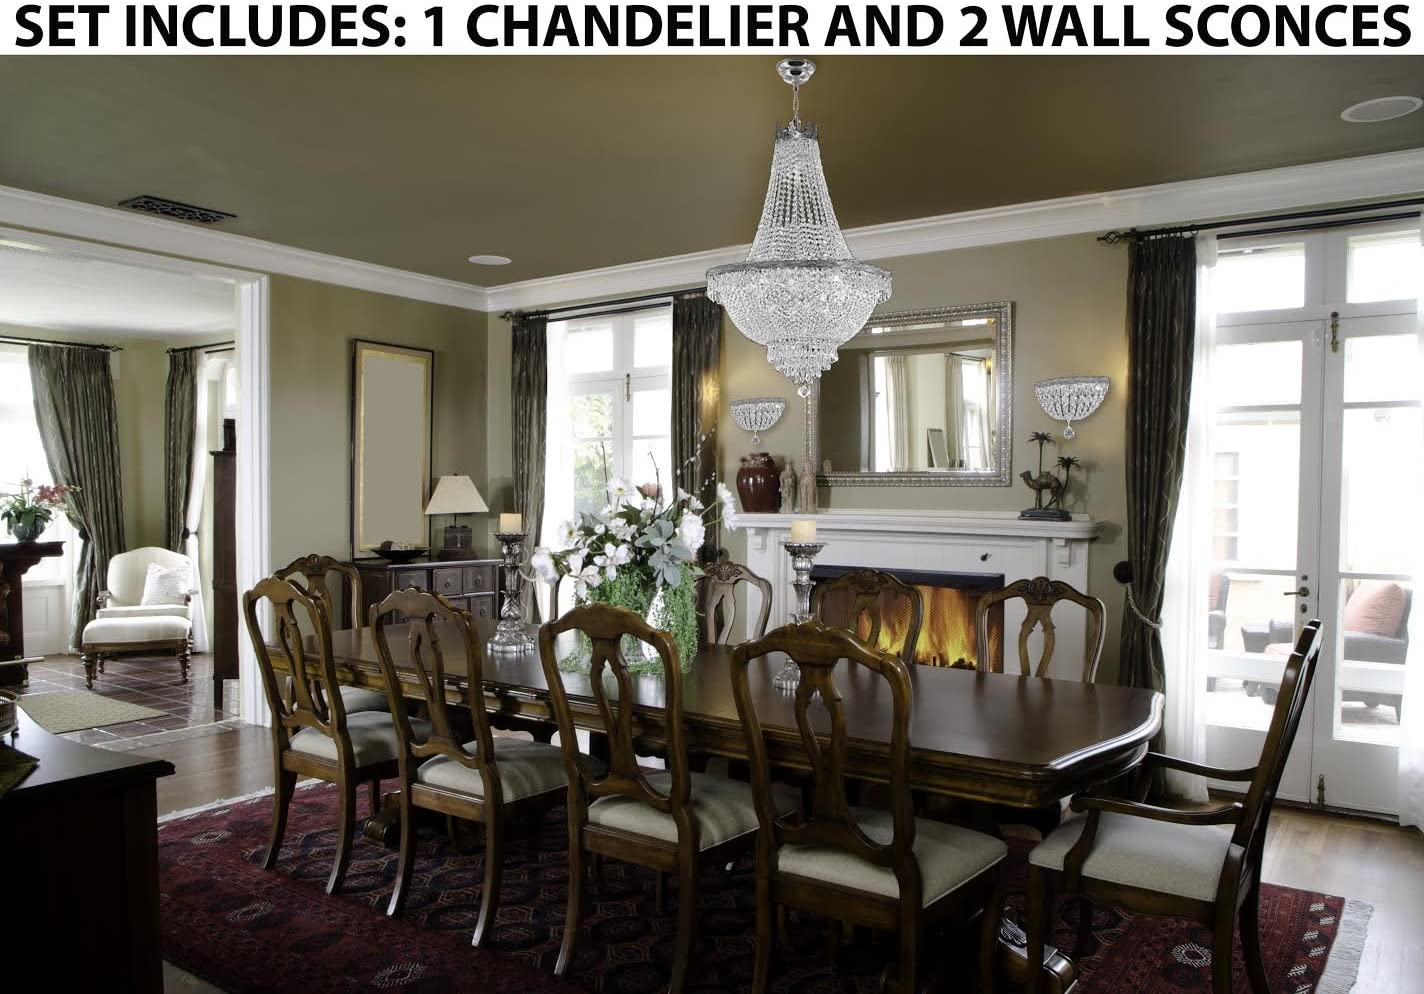 Set of 3-1 French Empire Crystal Chandelier Lighting H30 X W24 and 2 Empire Crystal Wall Sconce Lighting W 9.5 H 9 D 5